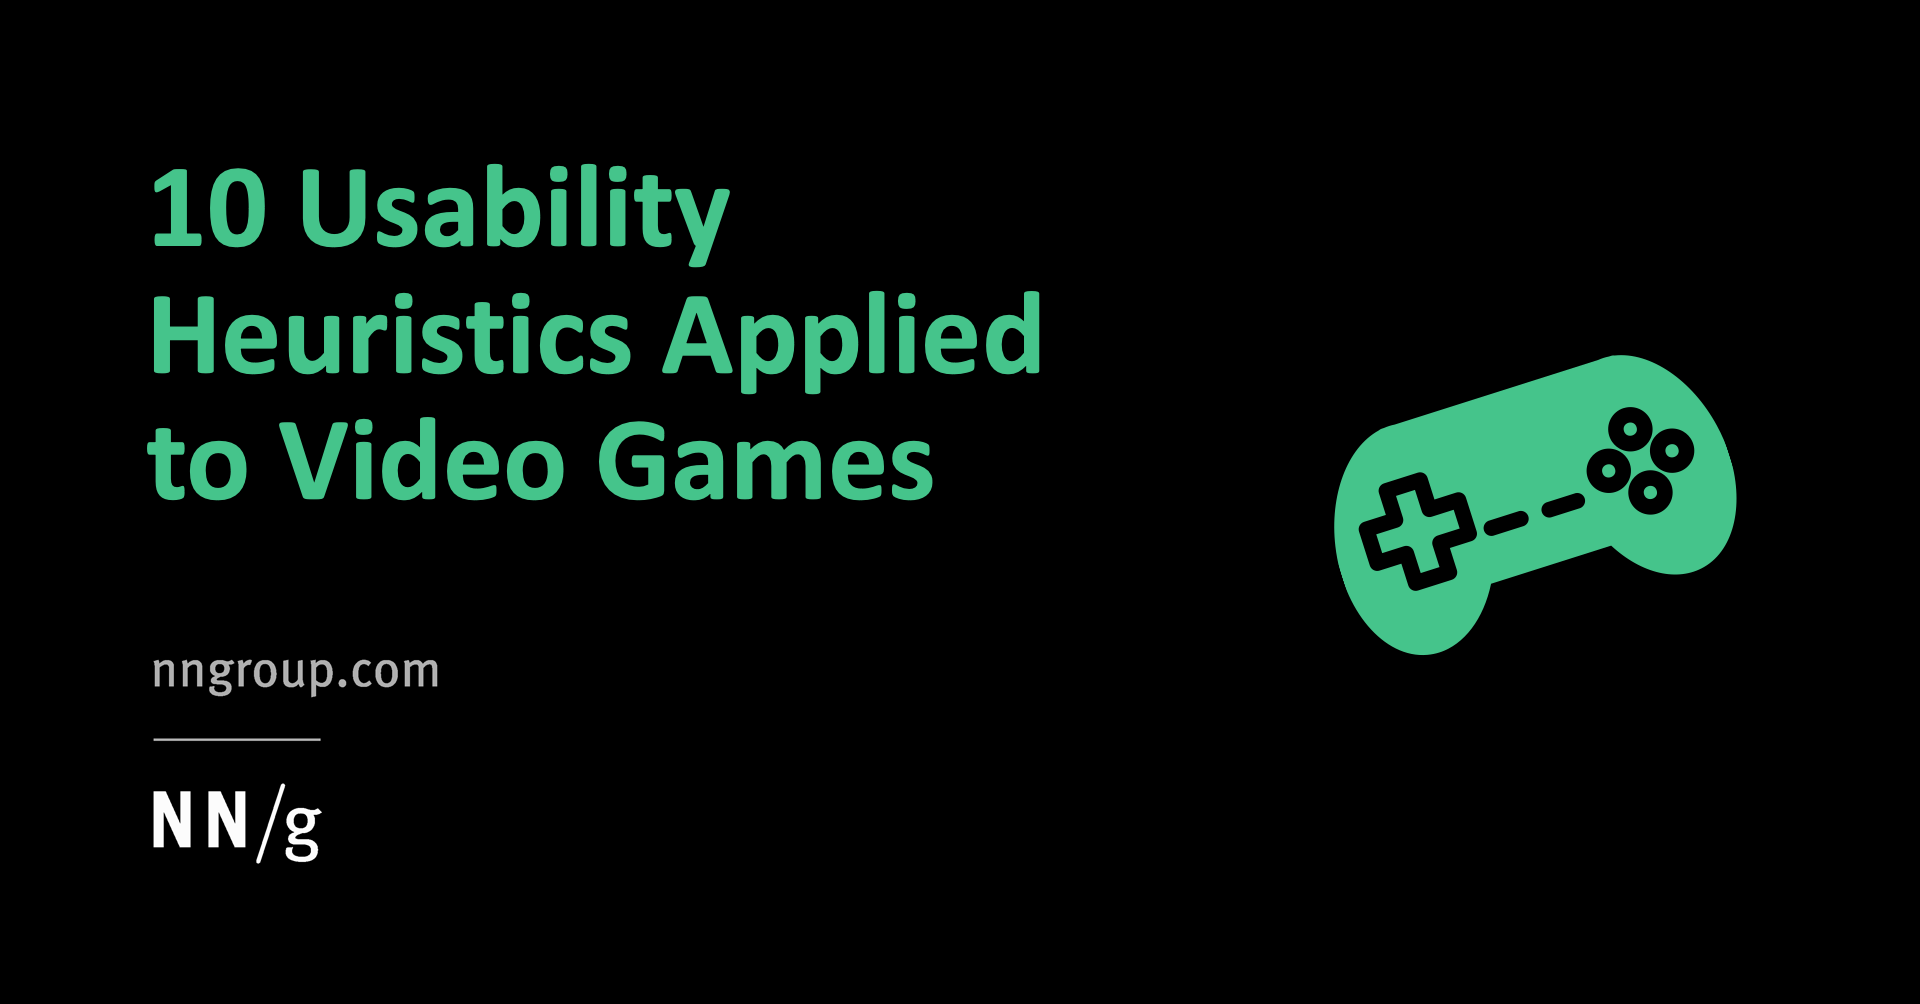 10 Usability Heuristics Applied to Video Games